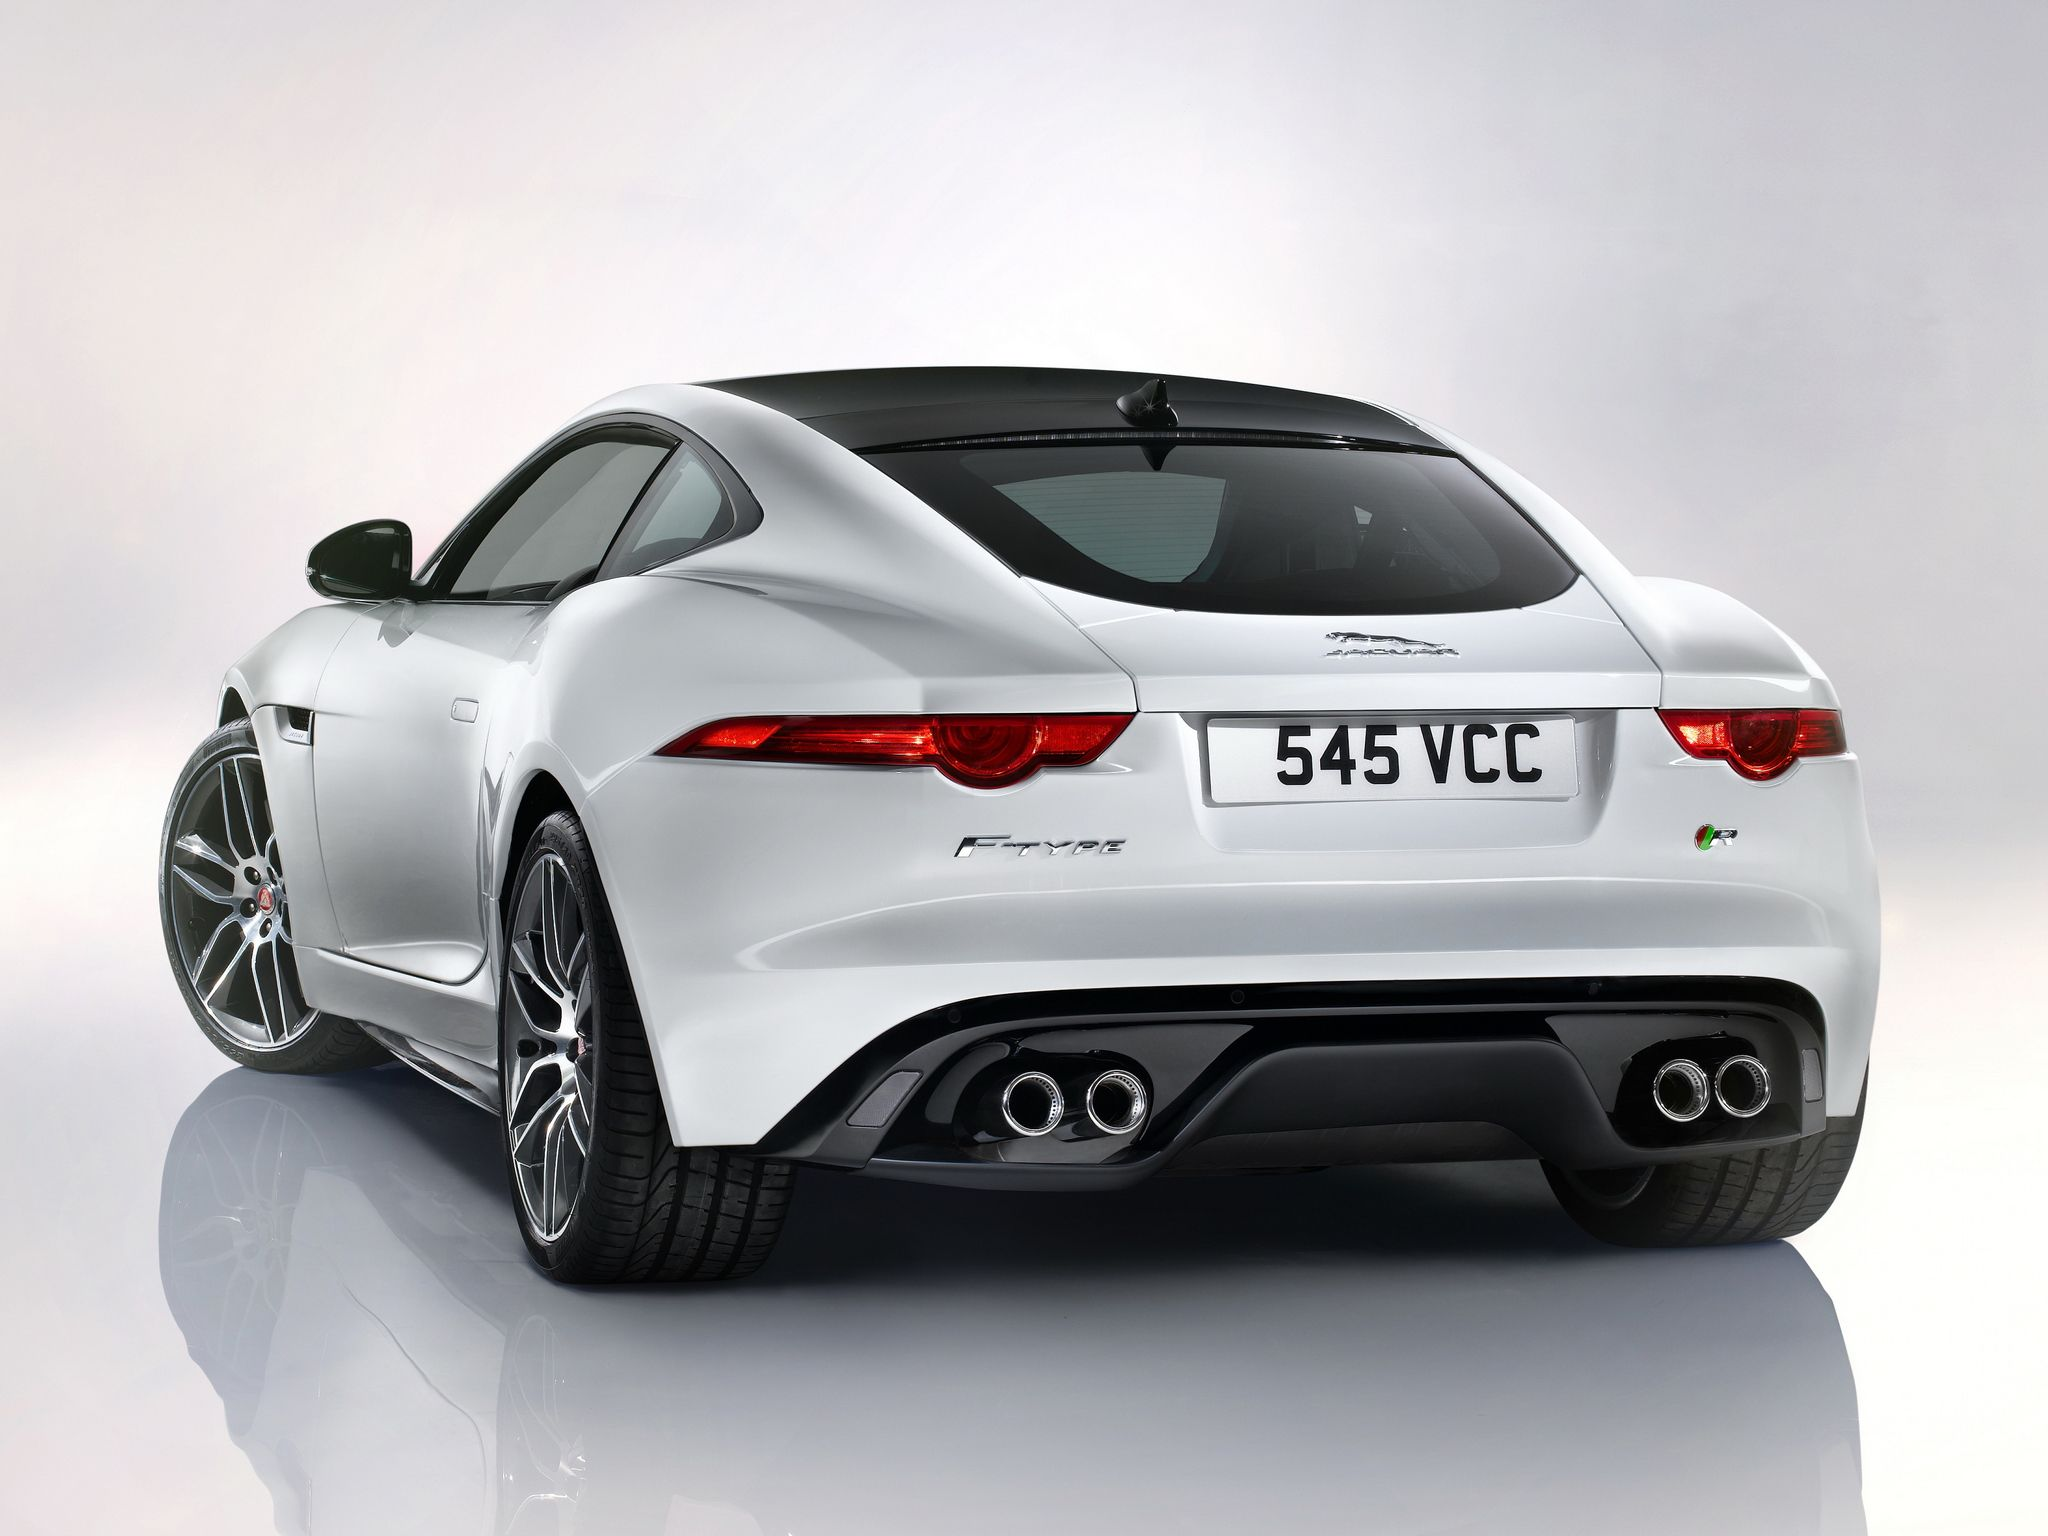 2014 jaguar f type coupe unveiled the 2013 los angeles auto show f type supercharged in seconds top speed f type s supercharged